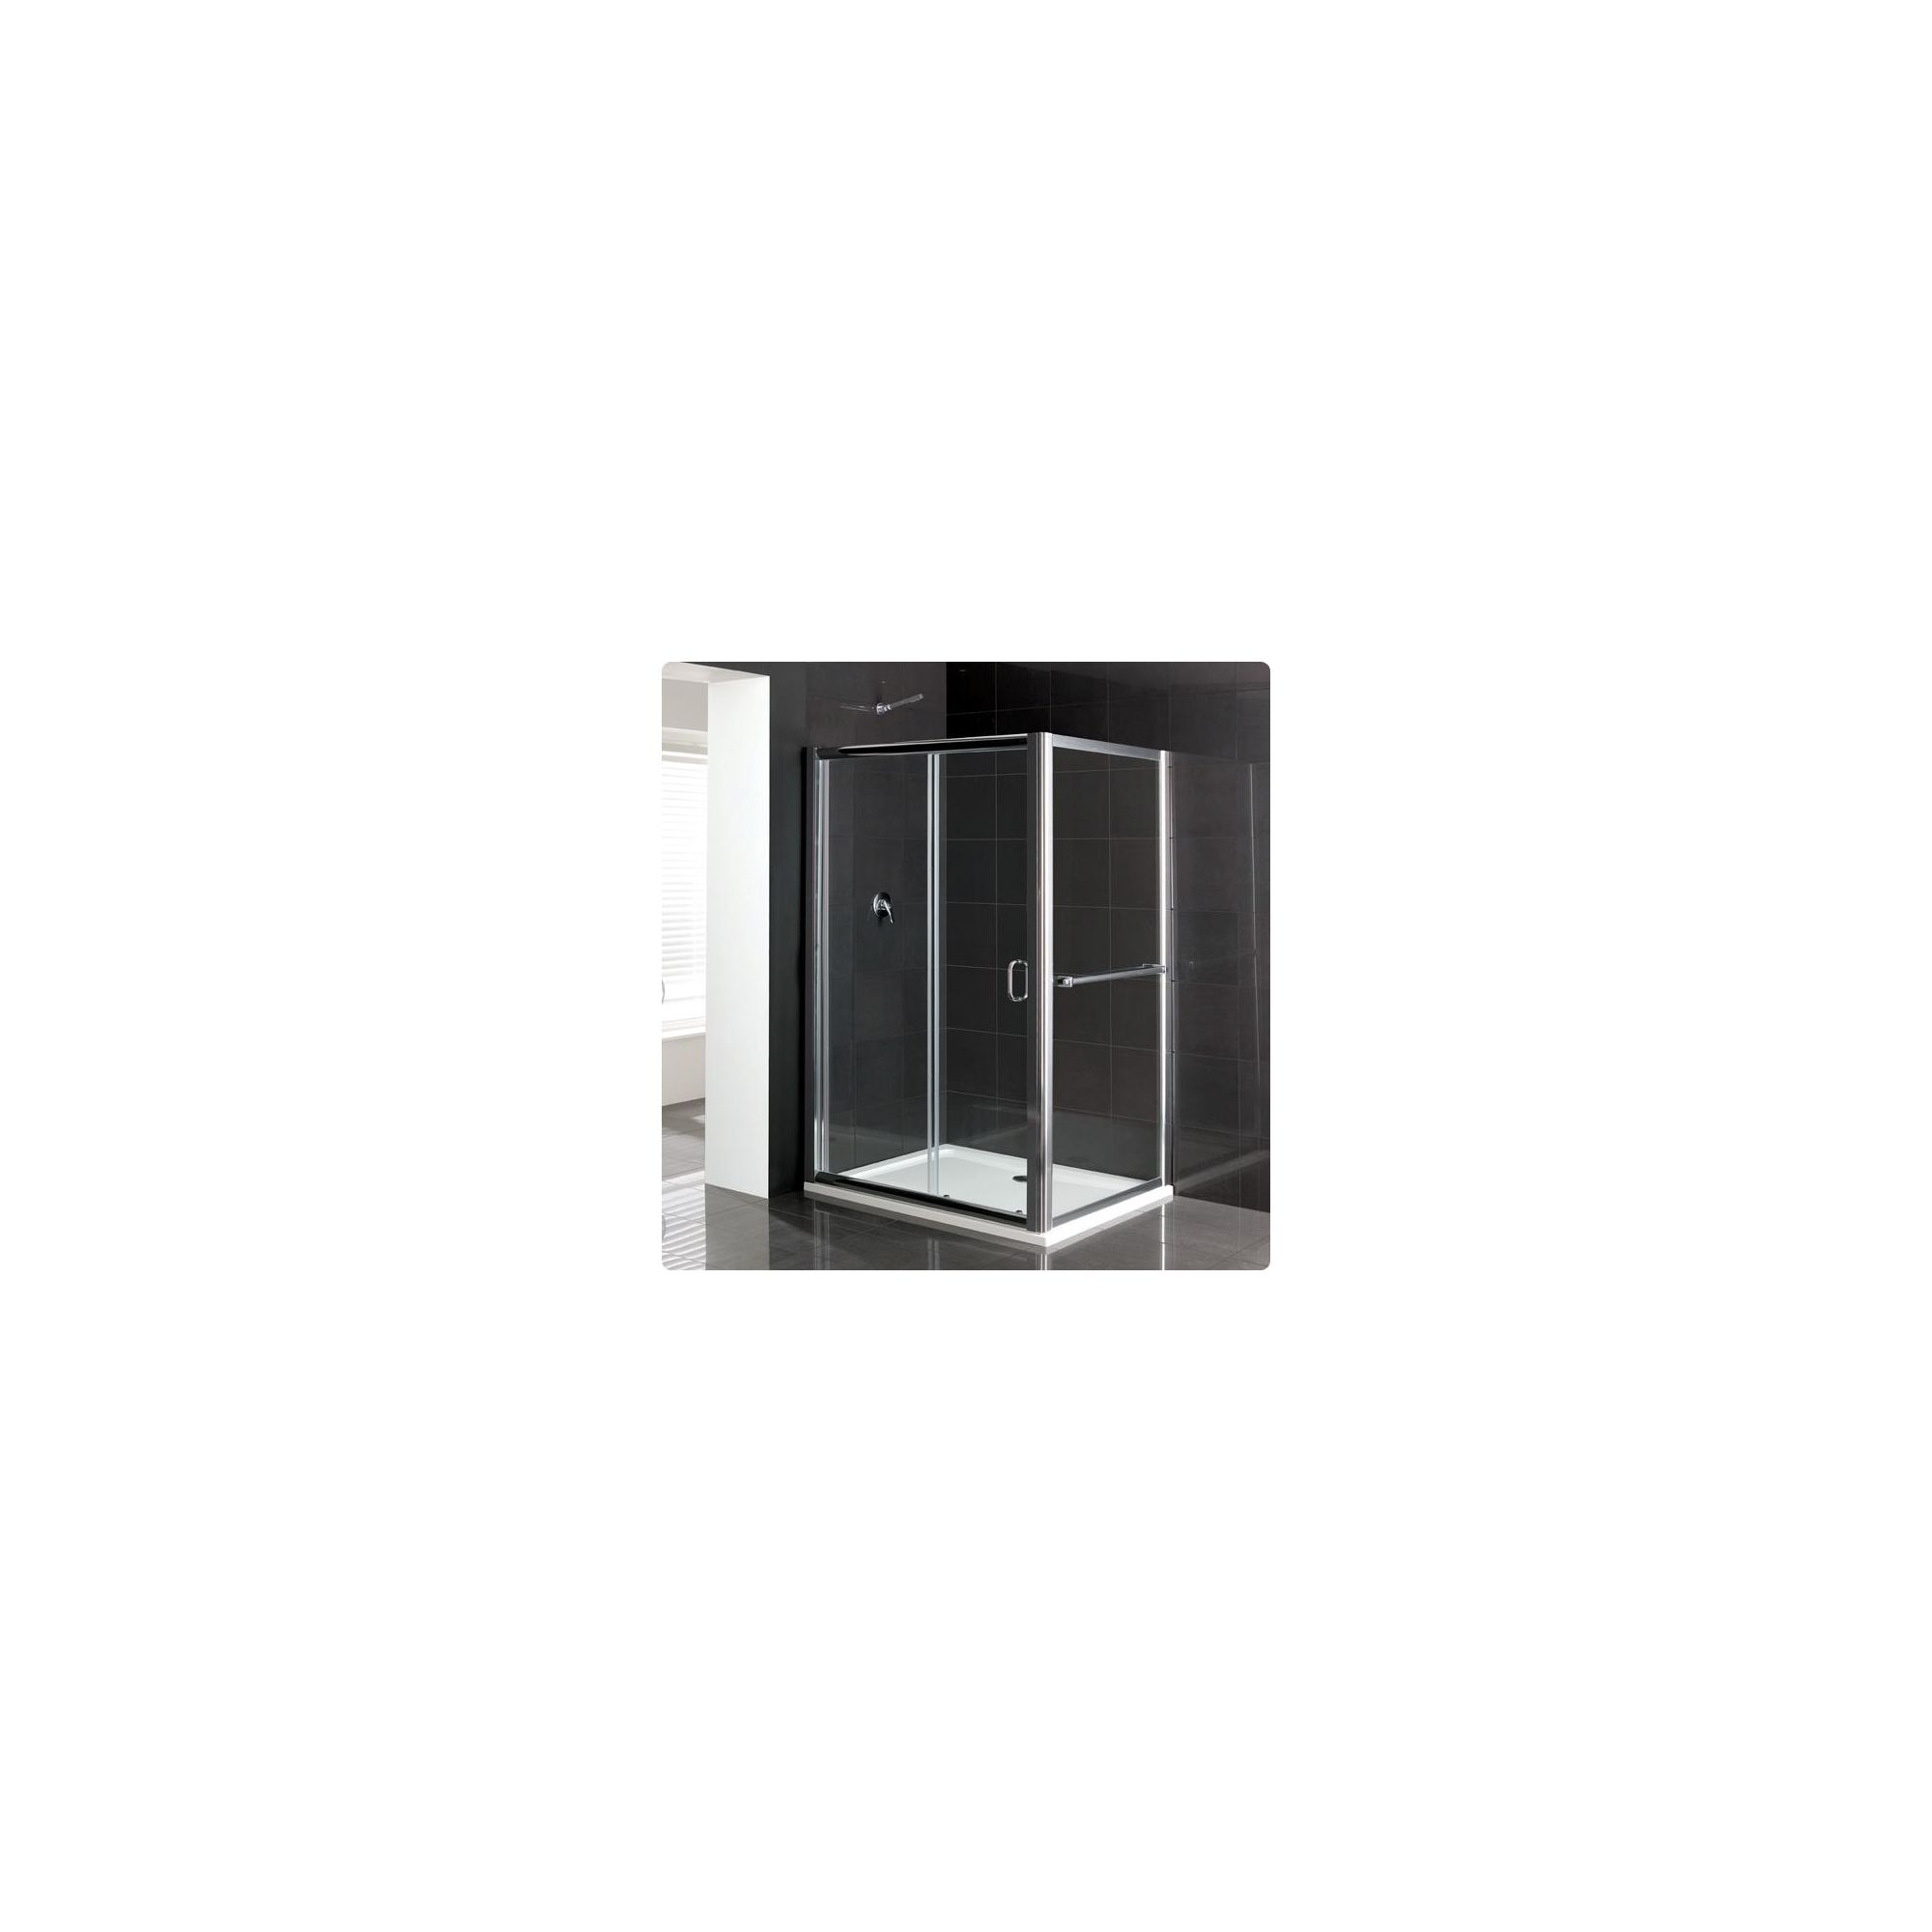 Duchy Elite Silver Sliding Door Shower Enclosure, 1100mm x 900mm, Standard Tray, 6mm Glass at Tescos Direct